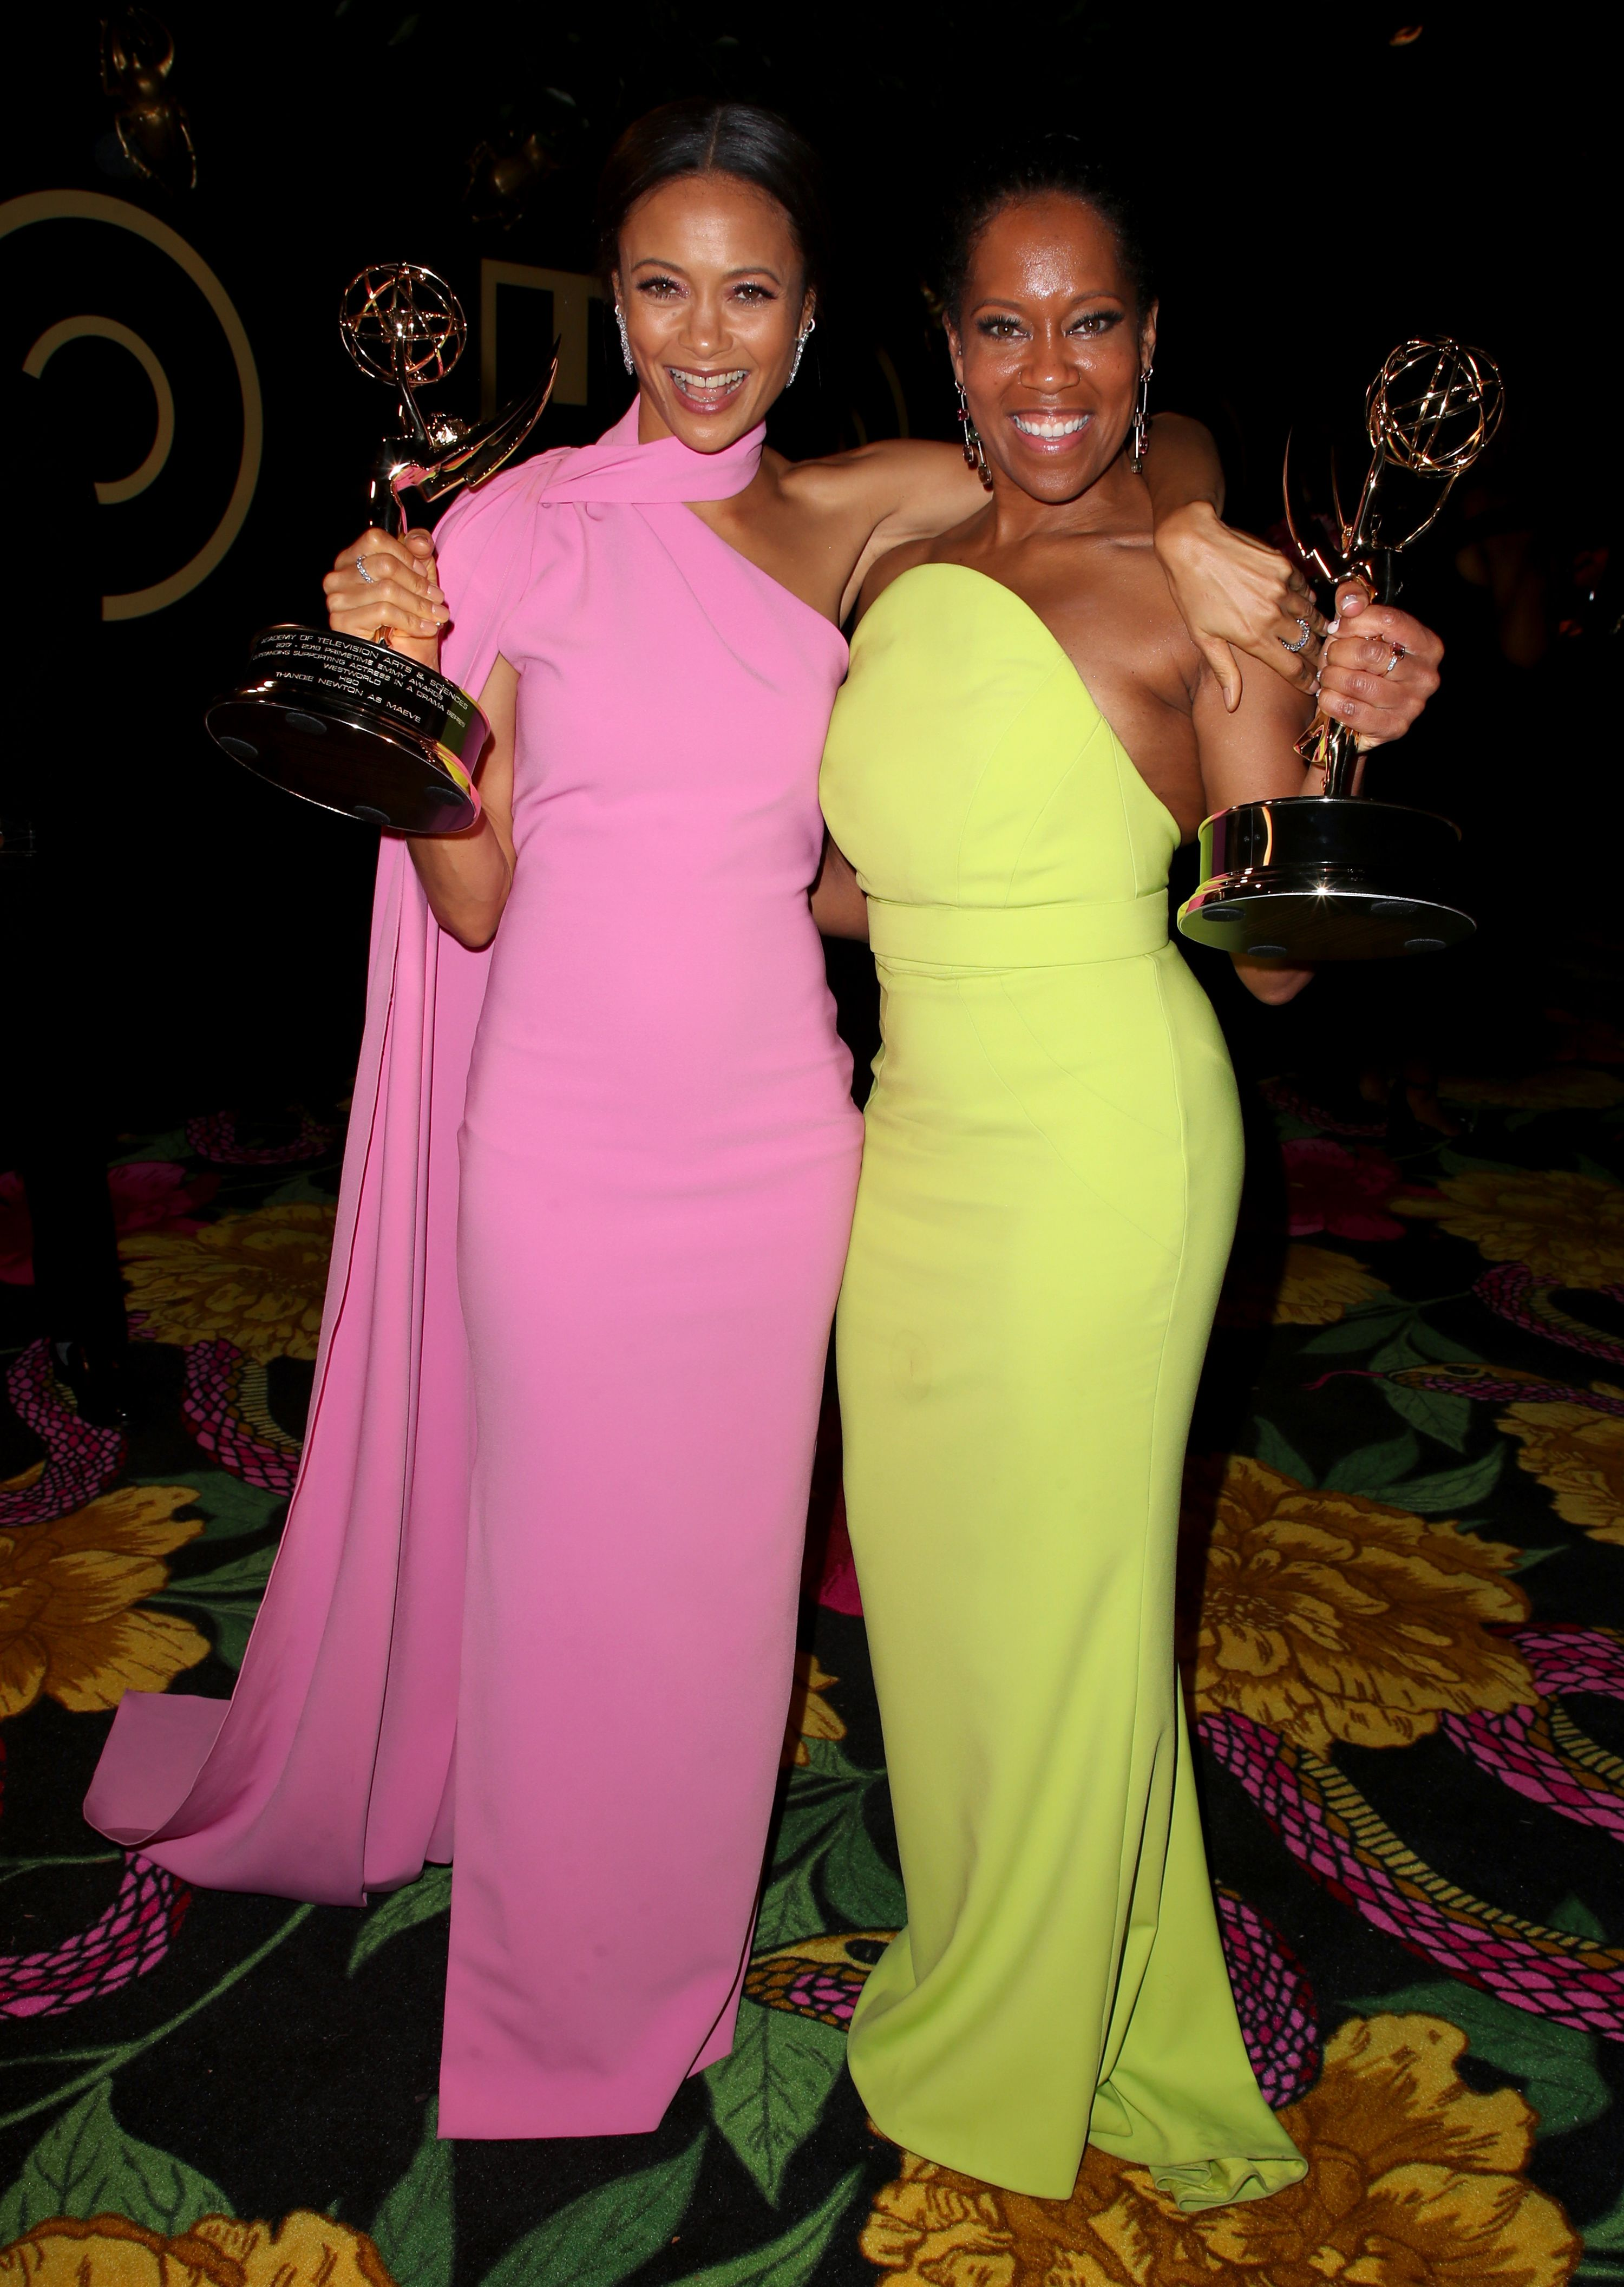 Thandie Newton and Regina King70th Primetime Emmy Awards, HBO Party, Arrivals, Los Angeles, USA - 17 Sep 2018